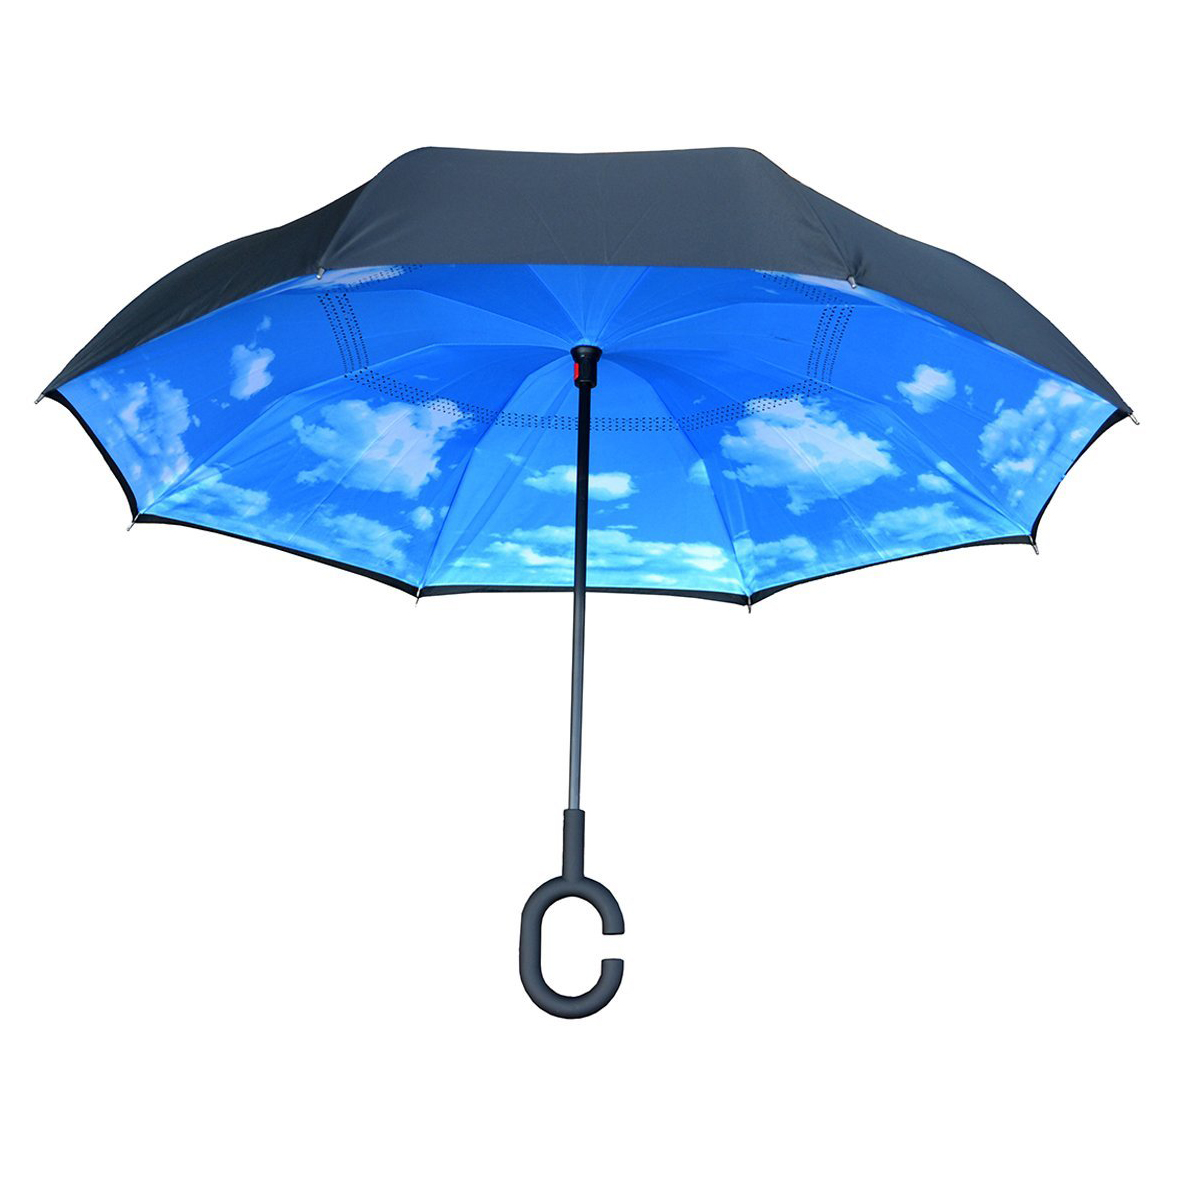 Topsy Turvy Inverted Reversible Umbrella Black with Blue Sky